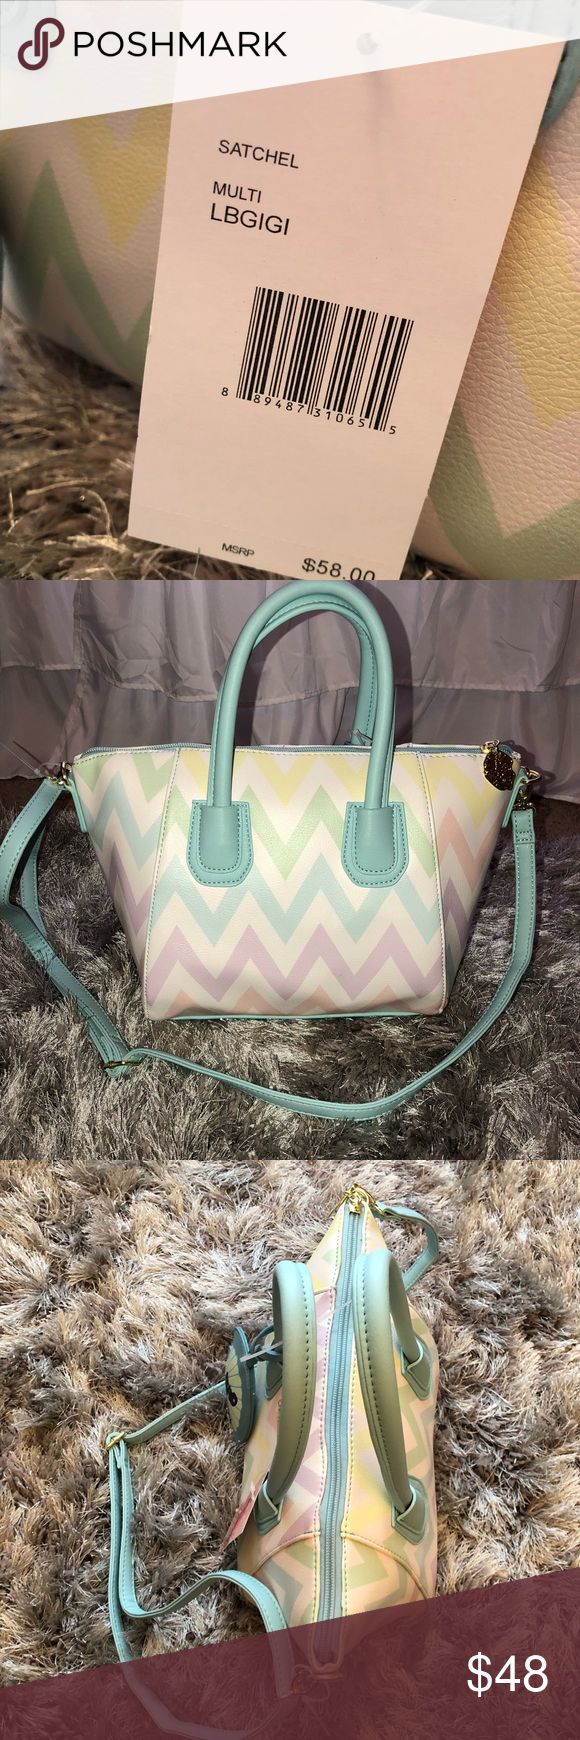 Betsey Johnson Mermaid 🧜🏼‍♀️ Chevron Purse New with tags! 13 X 7 inches Betsey Johnson Bags